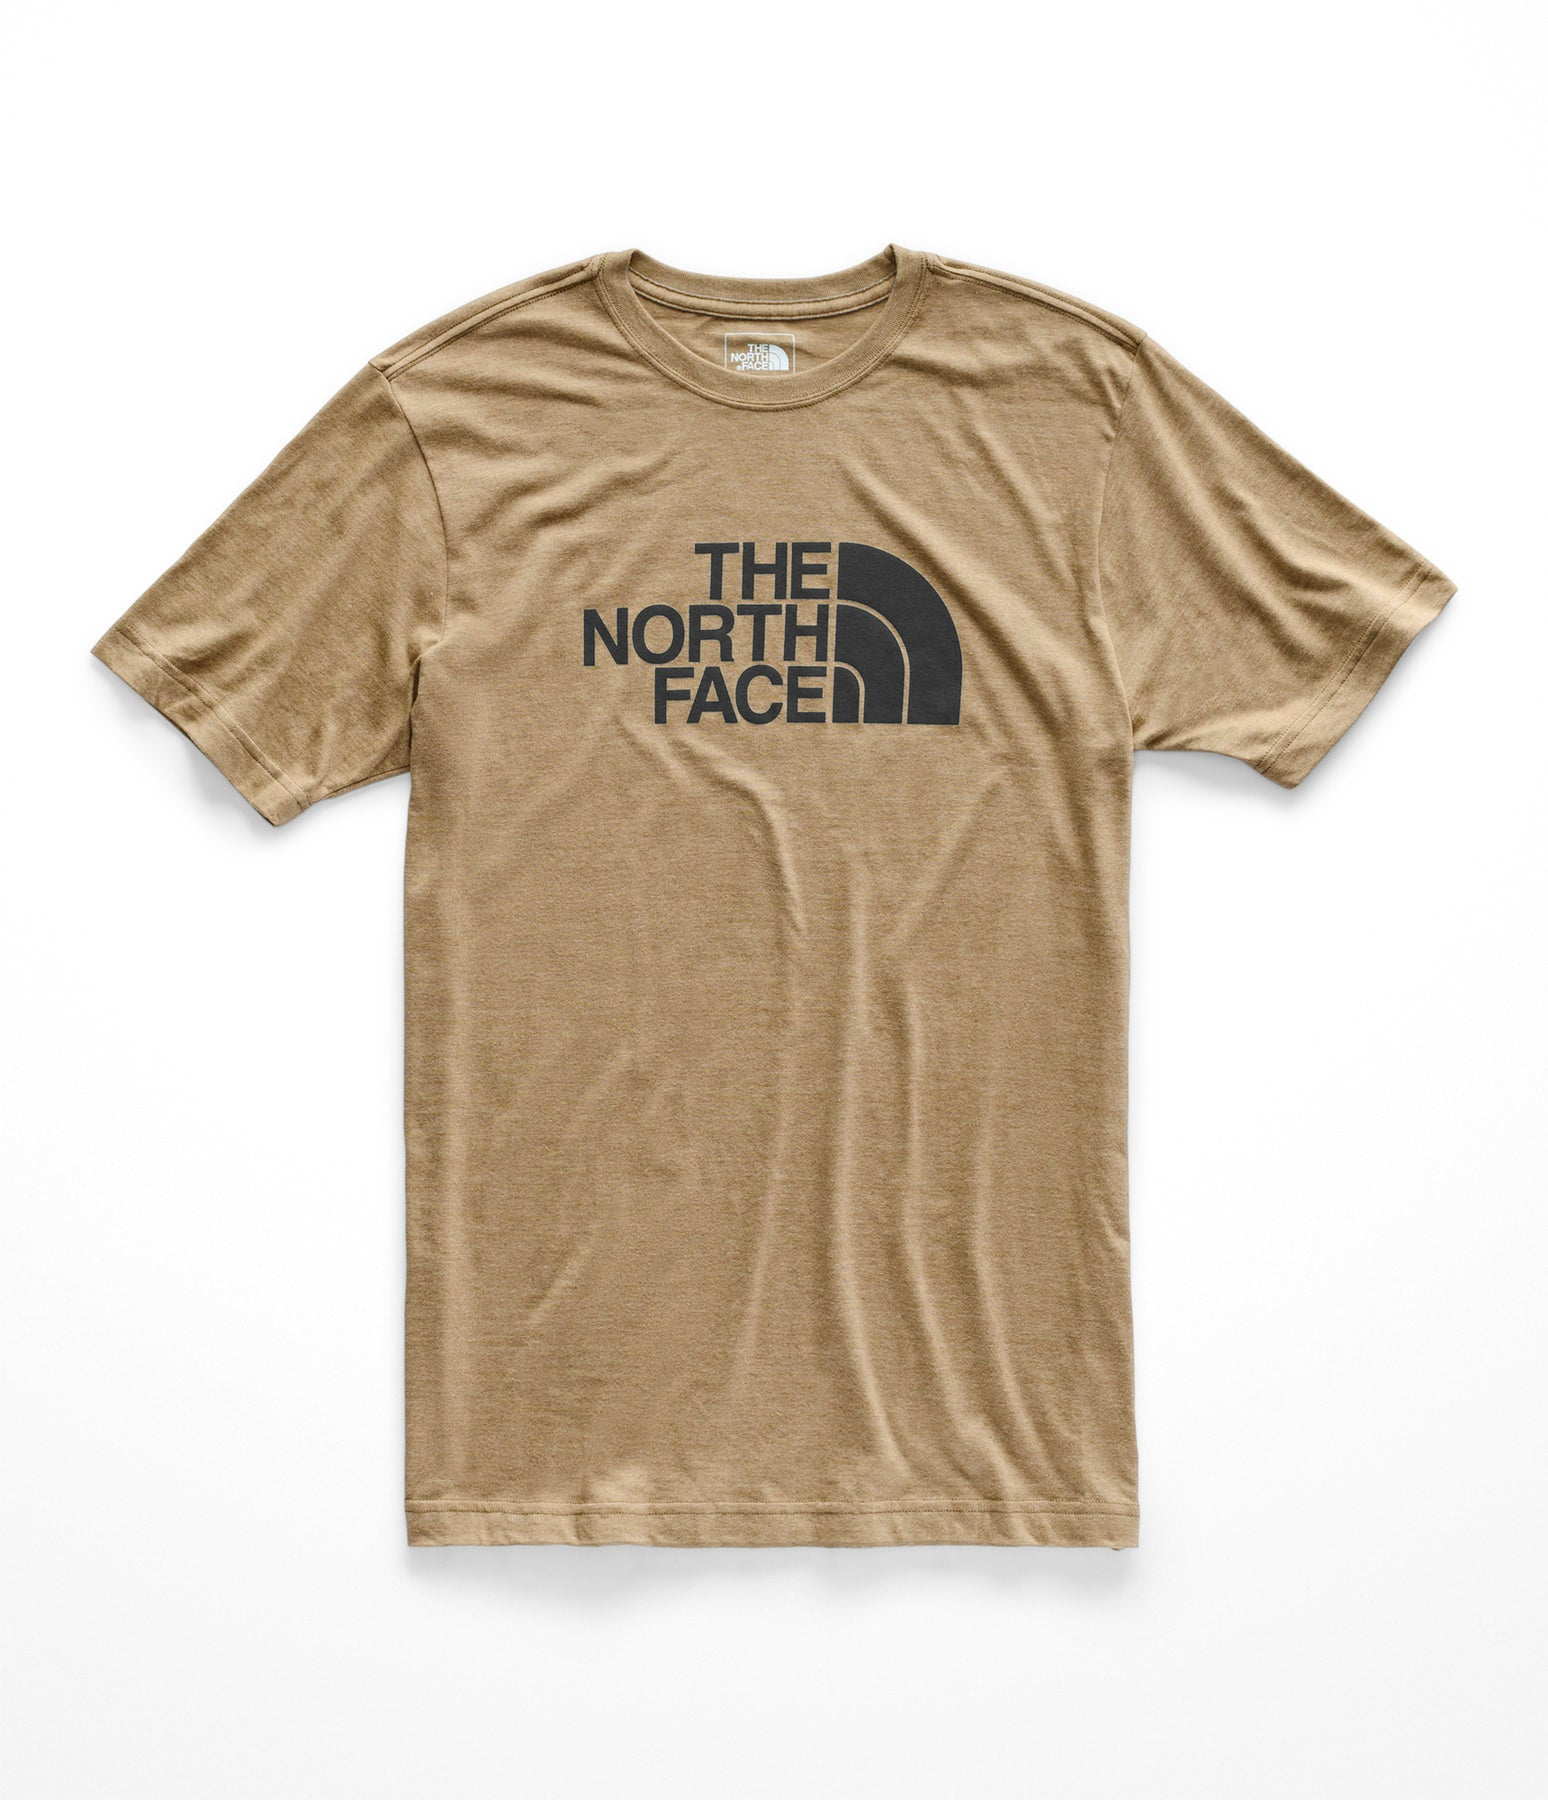 7165a5007 The North Face Men's Short Sleeve Tri-Blend Tee - Kelp Tan Heather/TNF Black